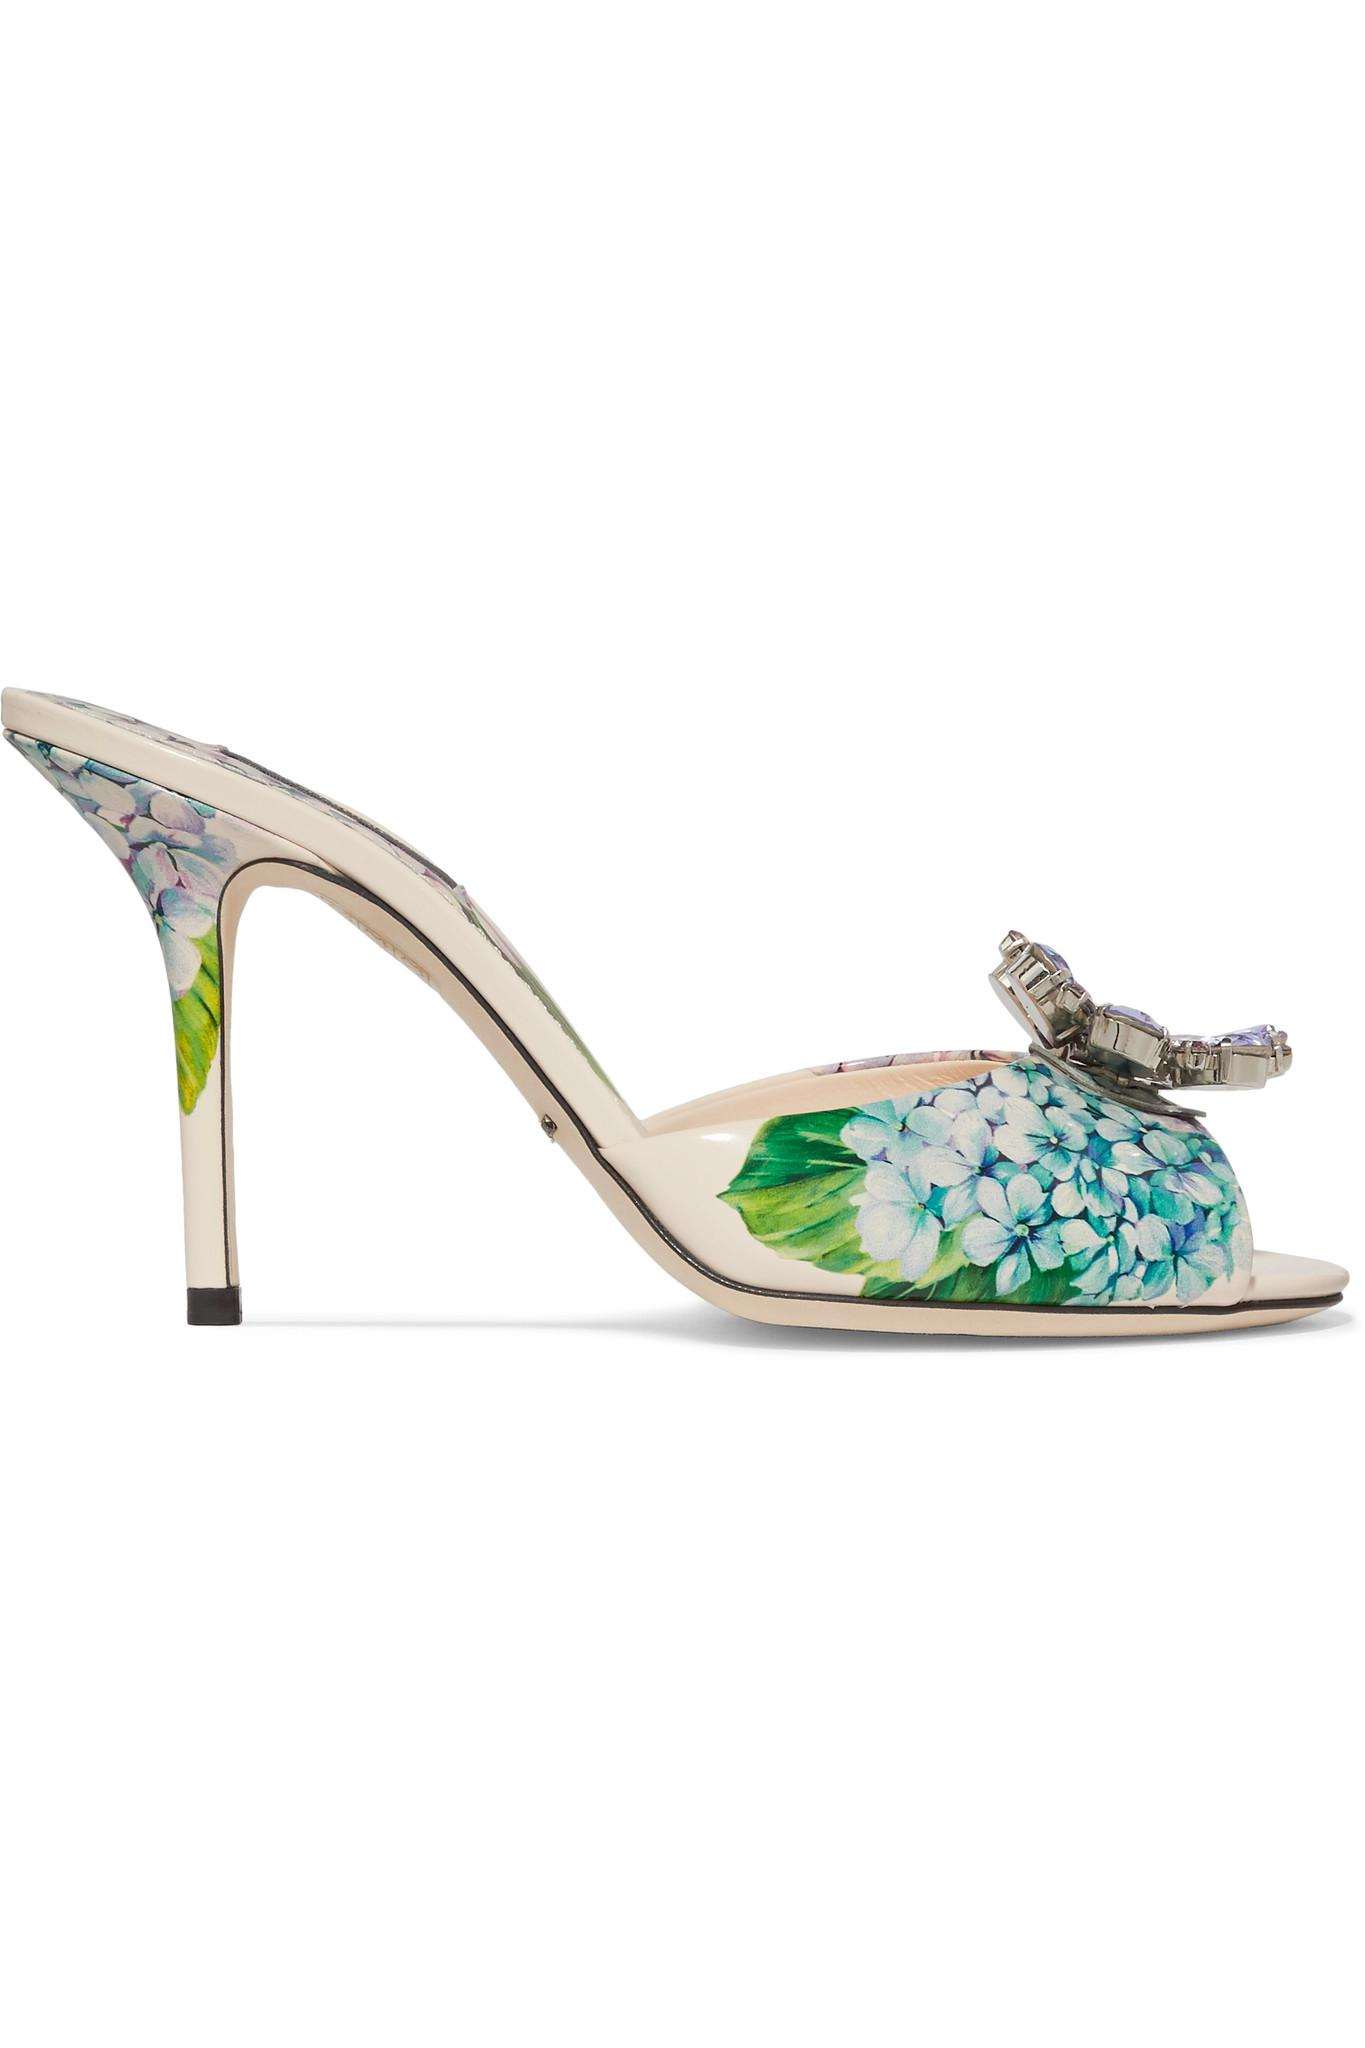 Crystal-embellished Floral-print Patent-leather Slingback Pumps - Blue Dolce & Gabbana